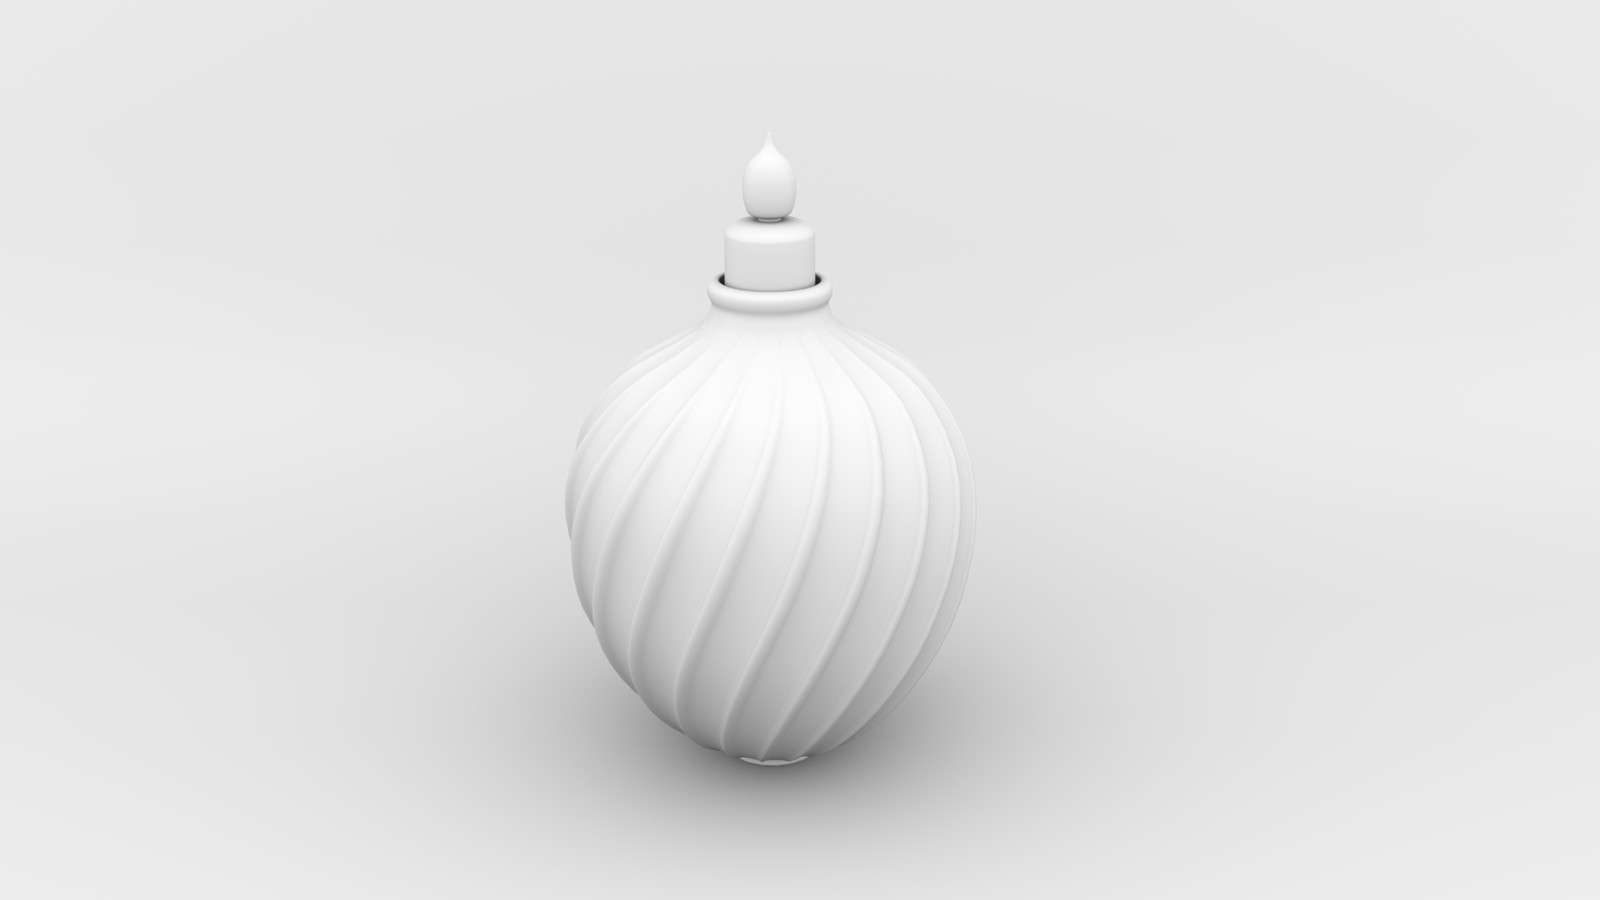 Ambient Occlusion